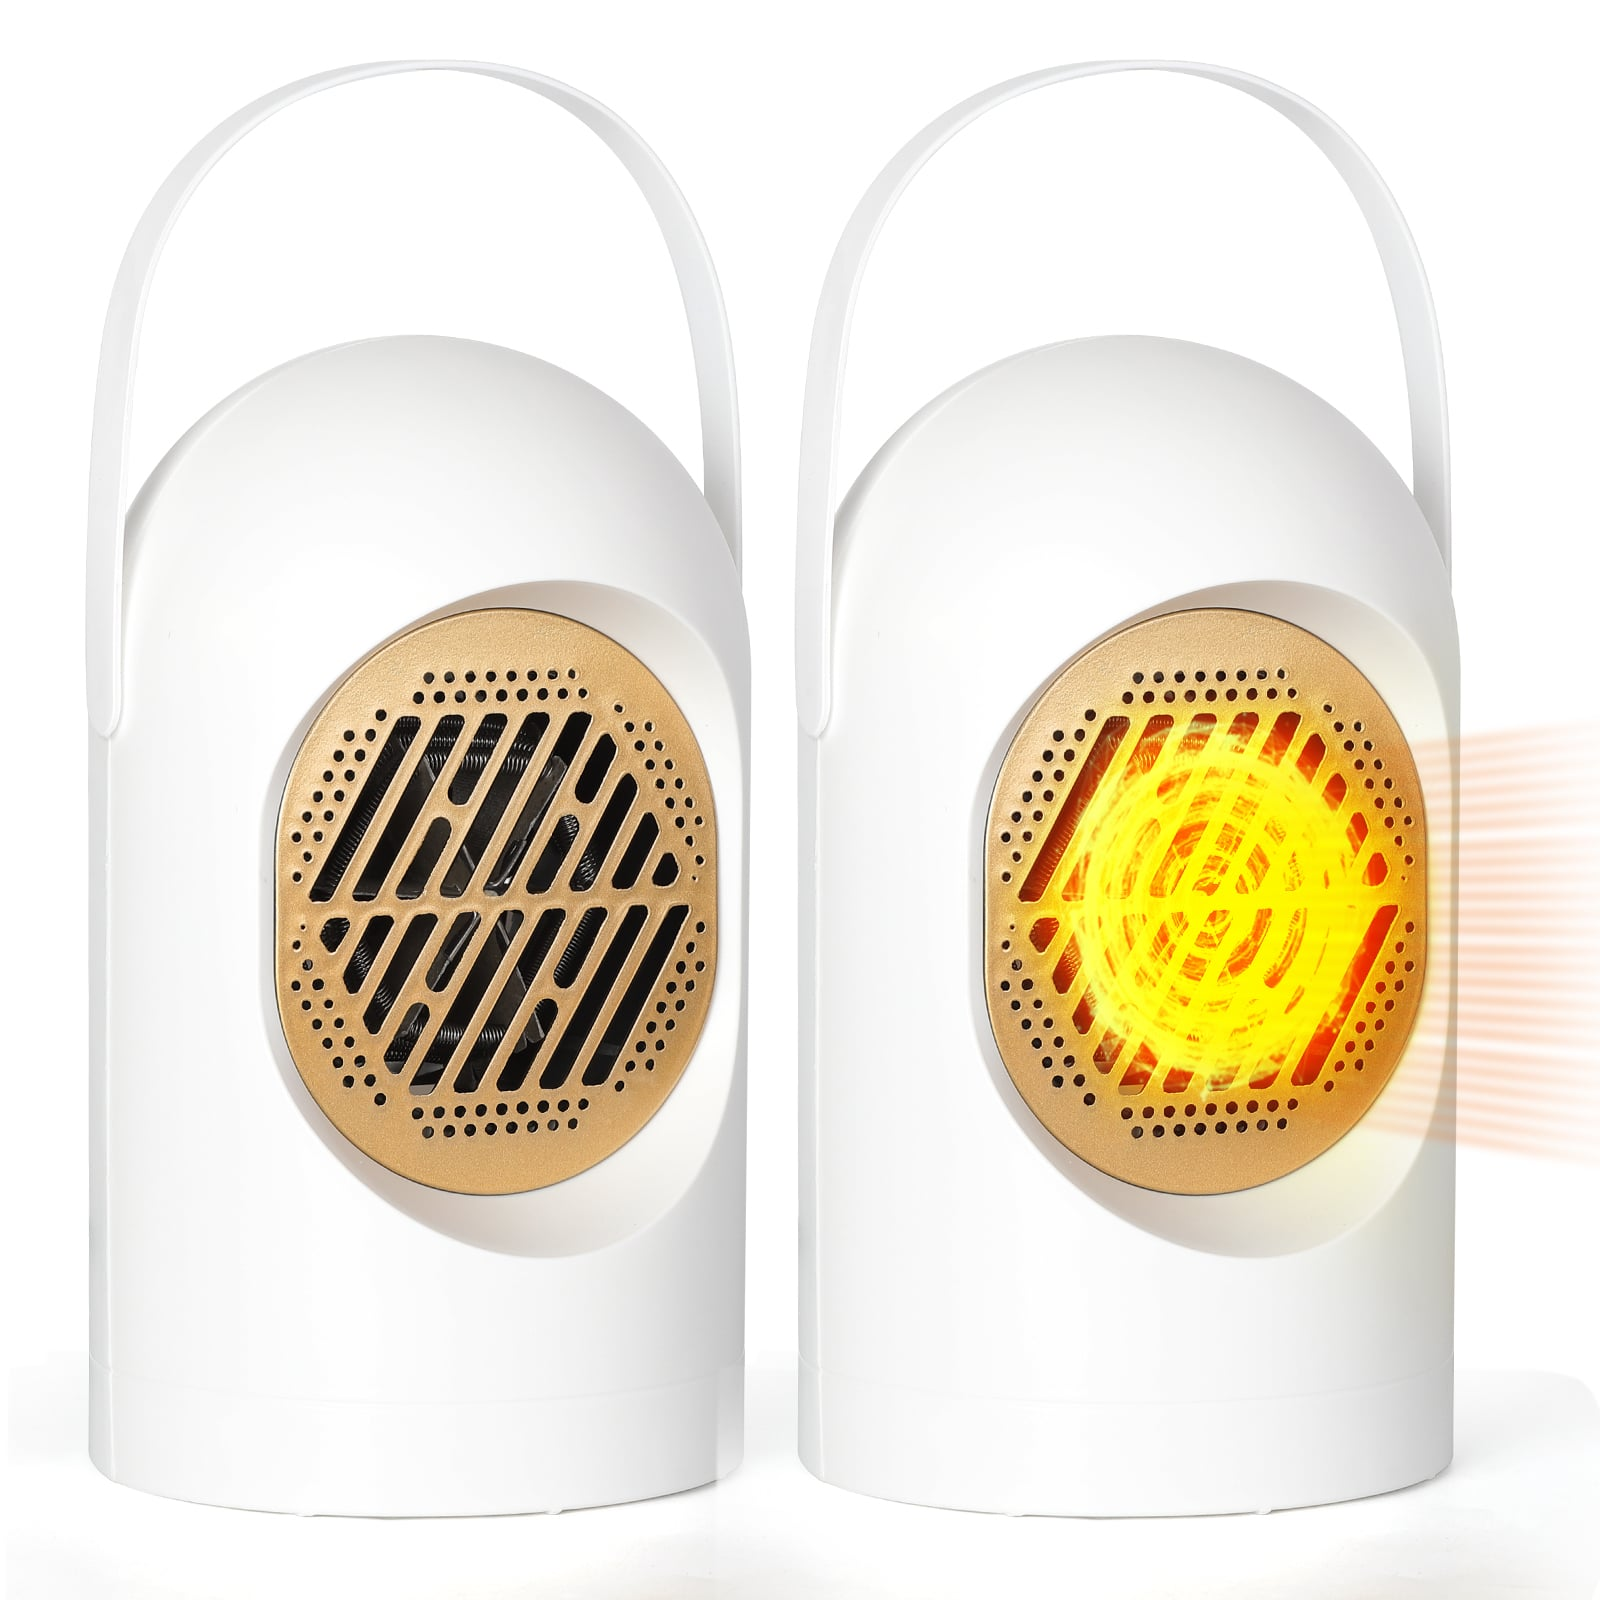 2-Set Electric Space Heaters $28.97